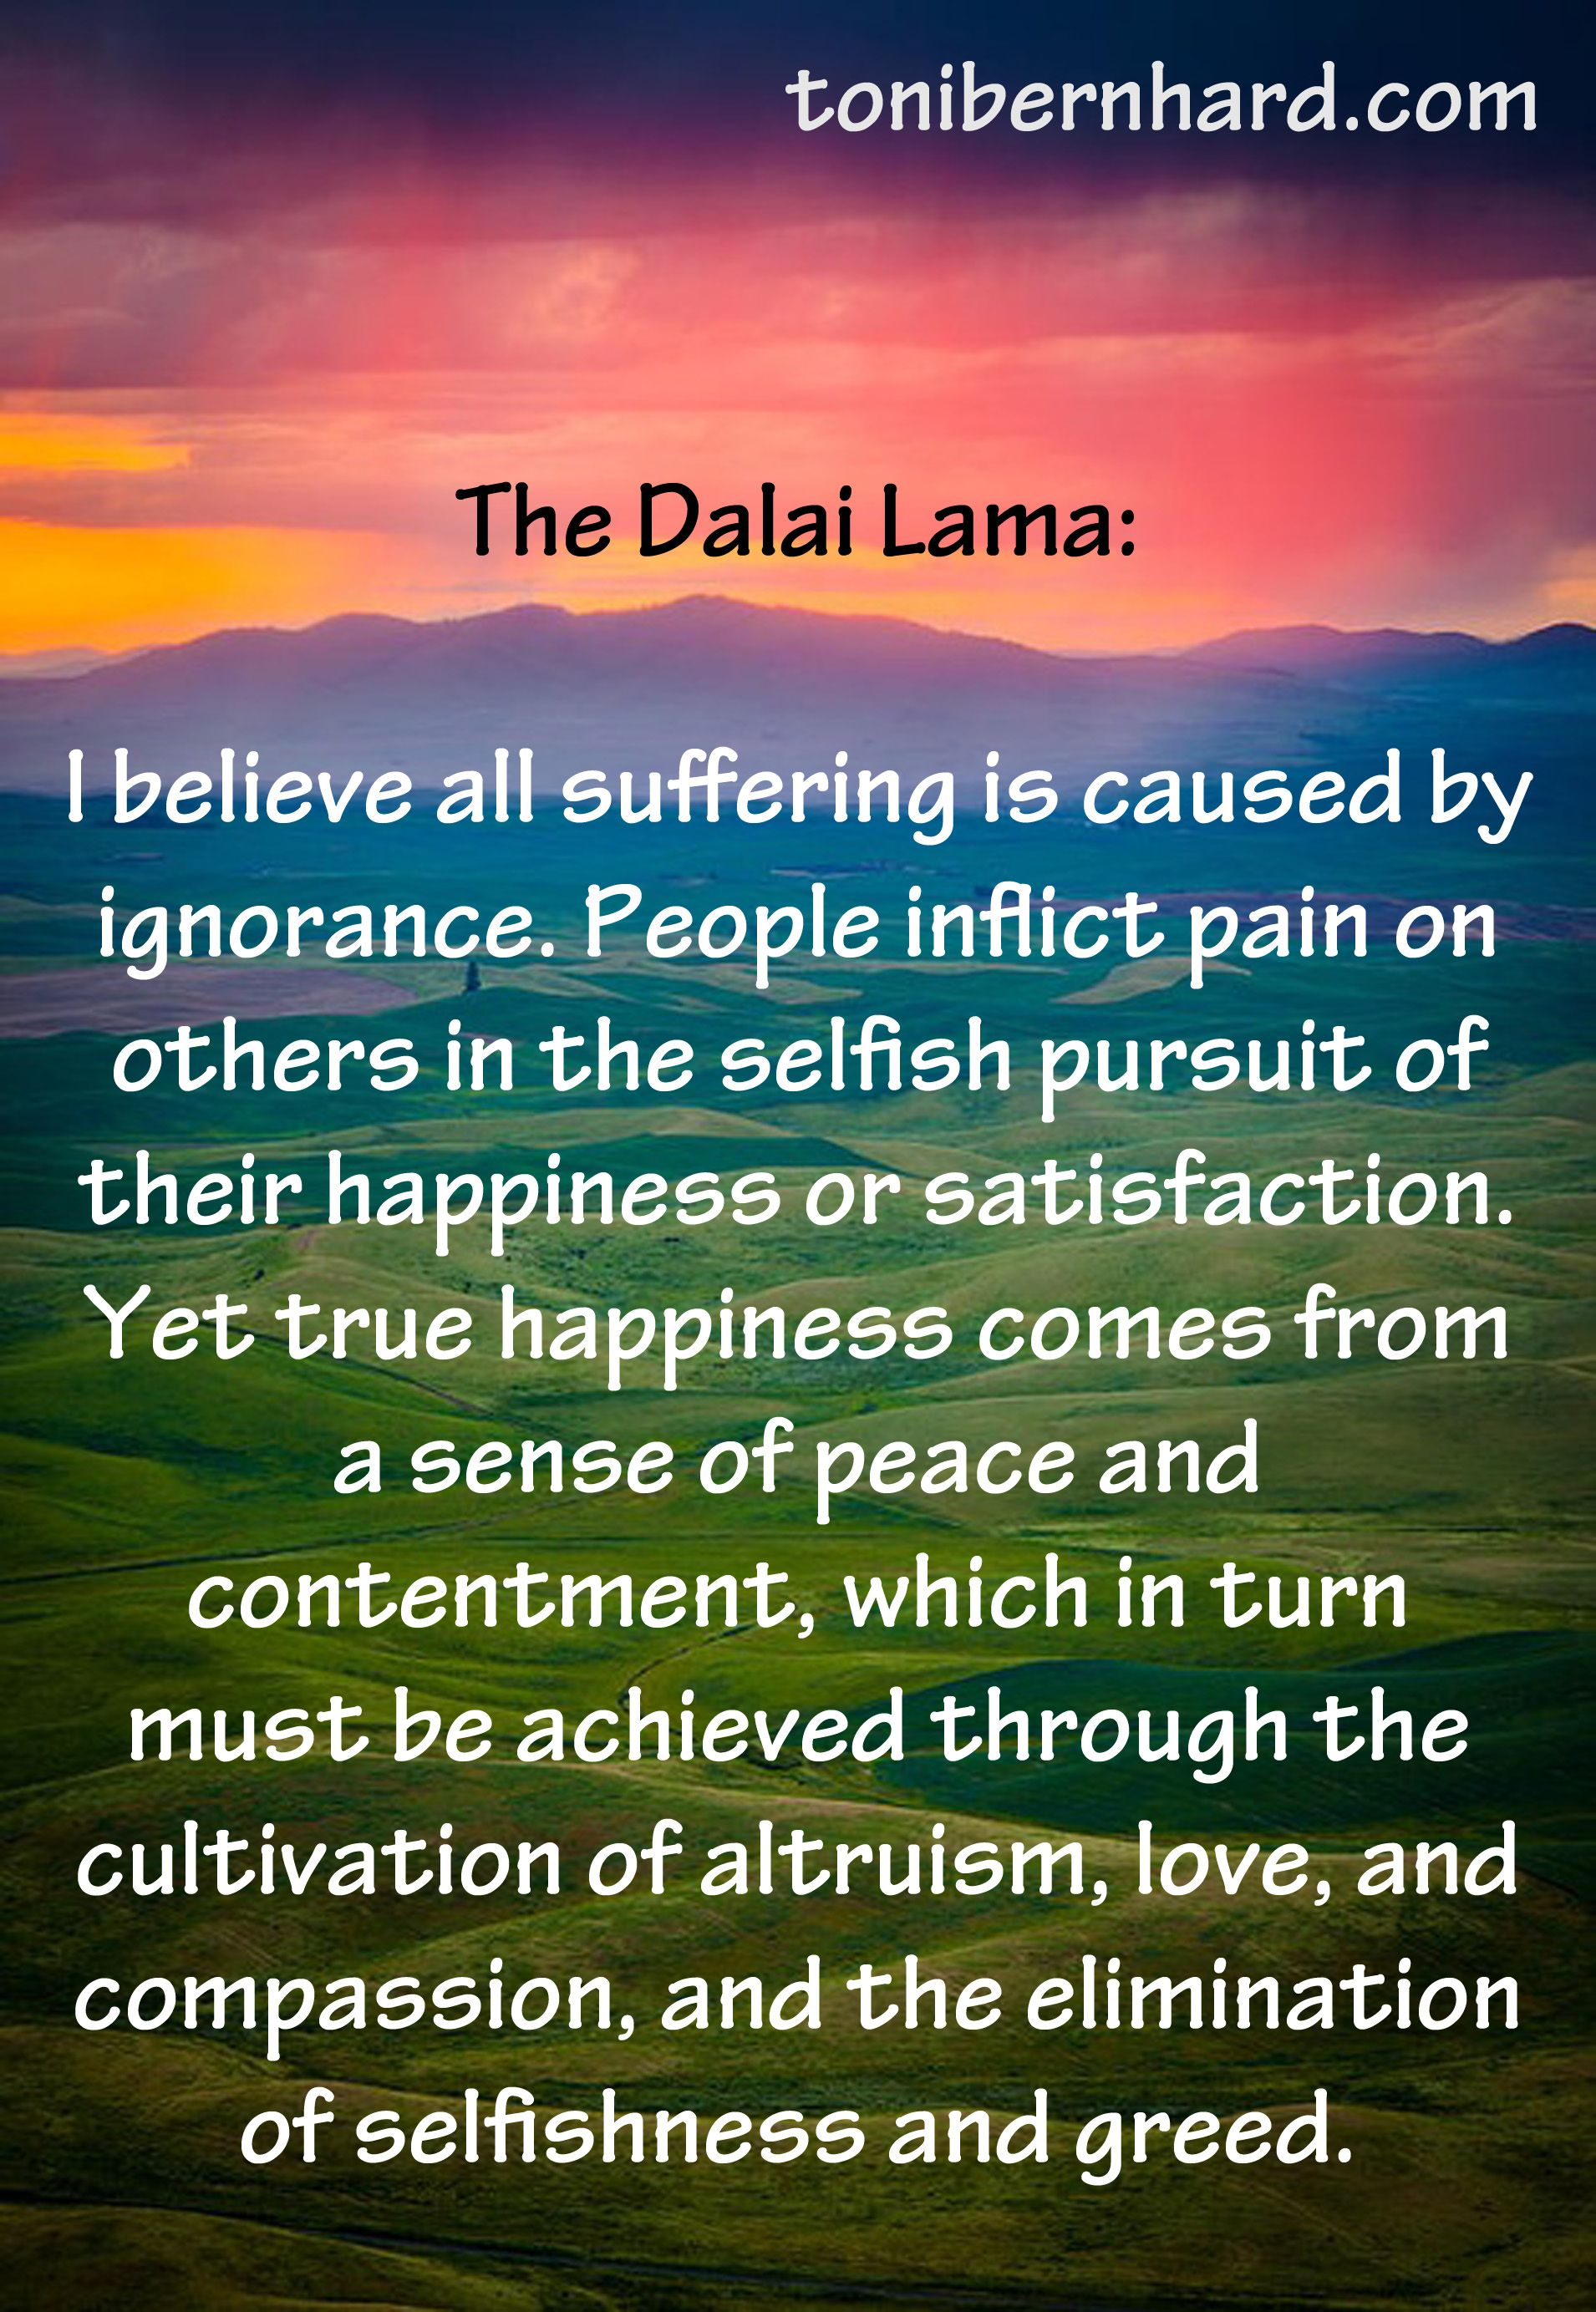 Dalai Lama Quotes Life Dalai Lama Quotes On Selfishness Peoplepc Picture